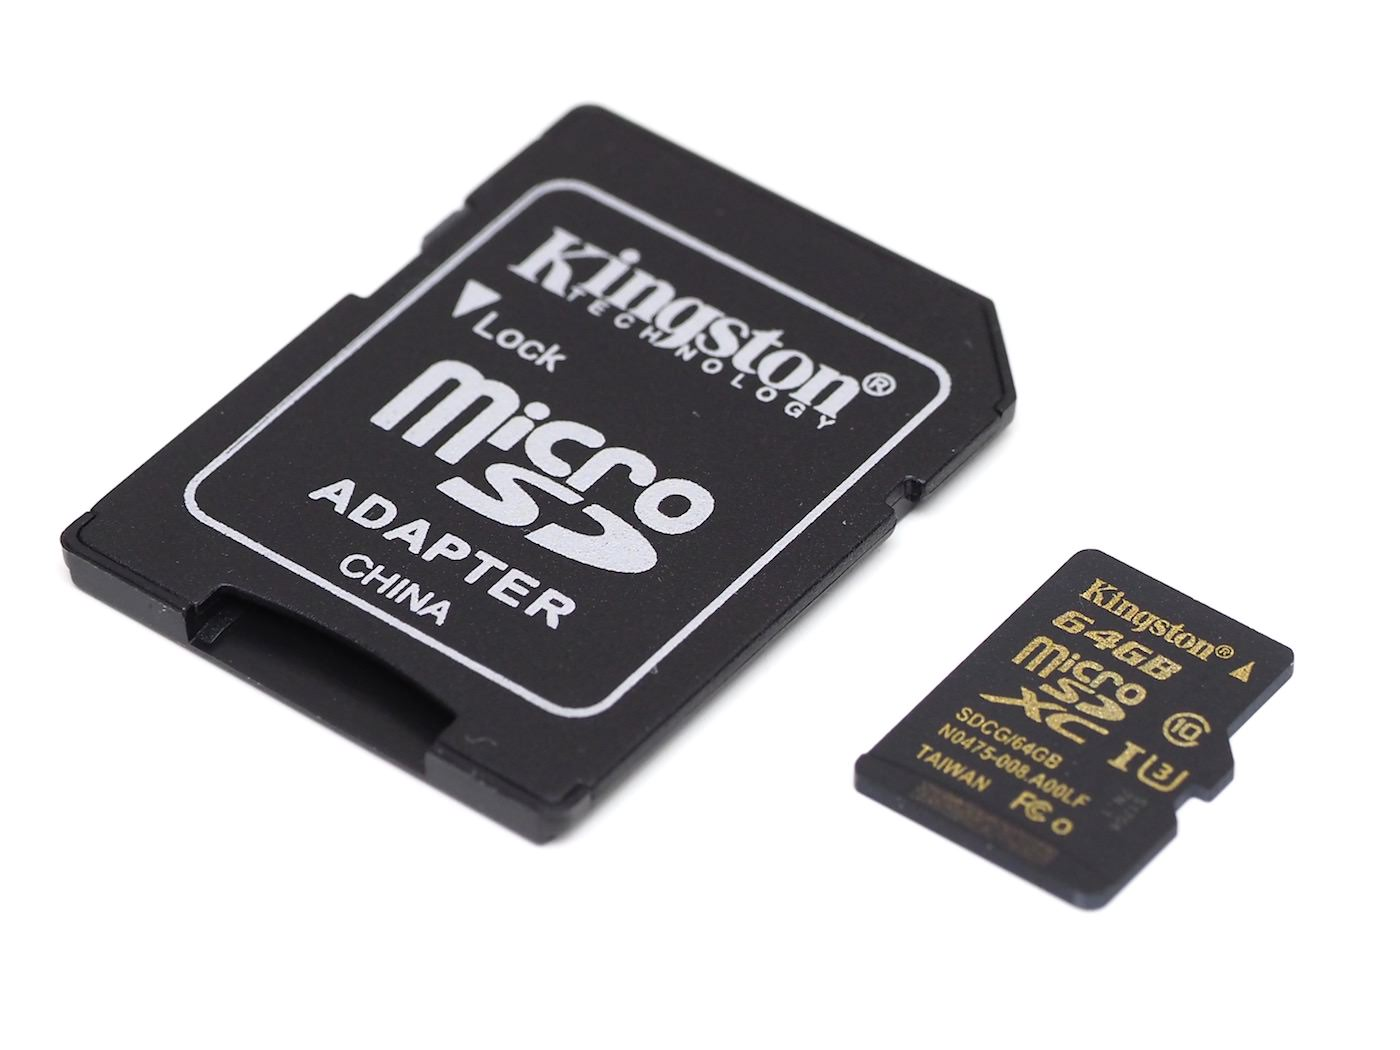 Kingston gold microsd uhs i u3 sdcg 64gb 00002